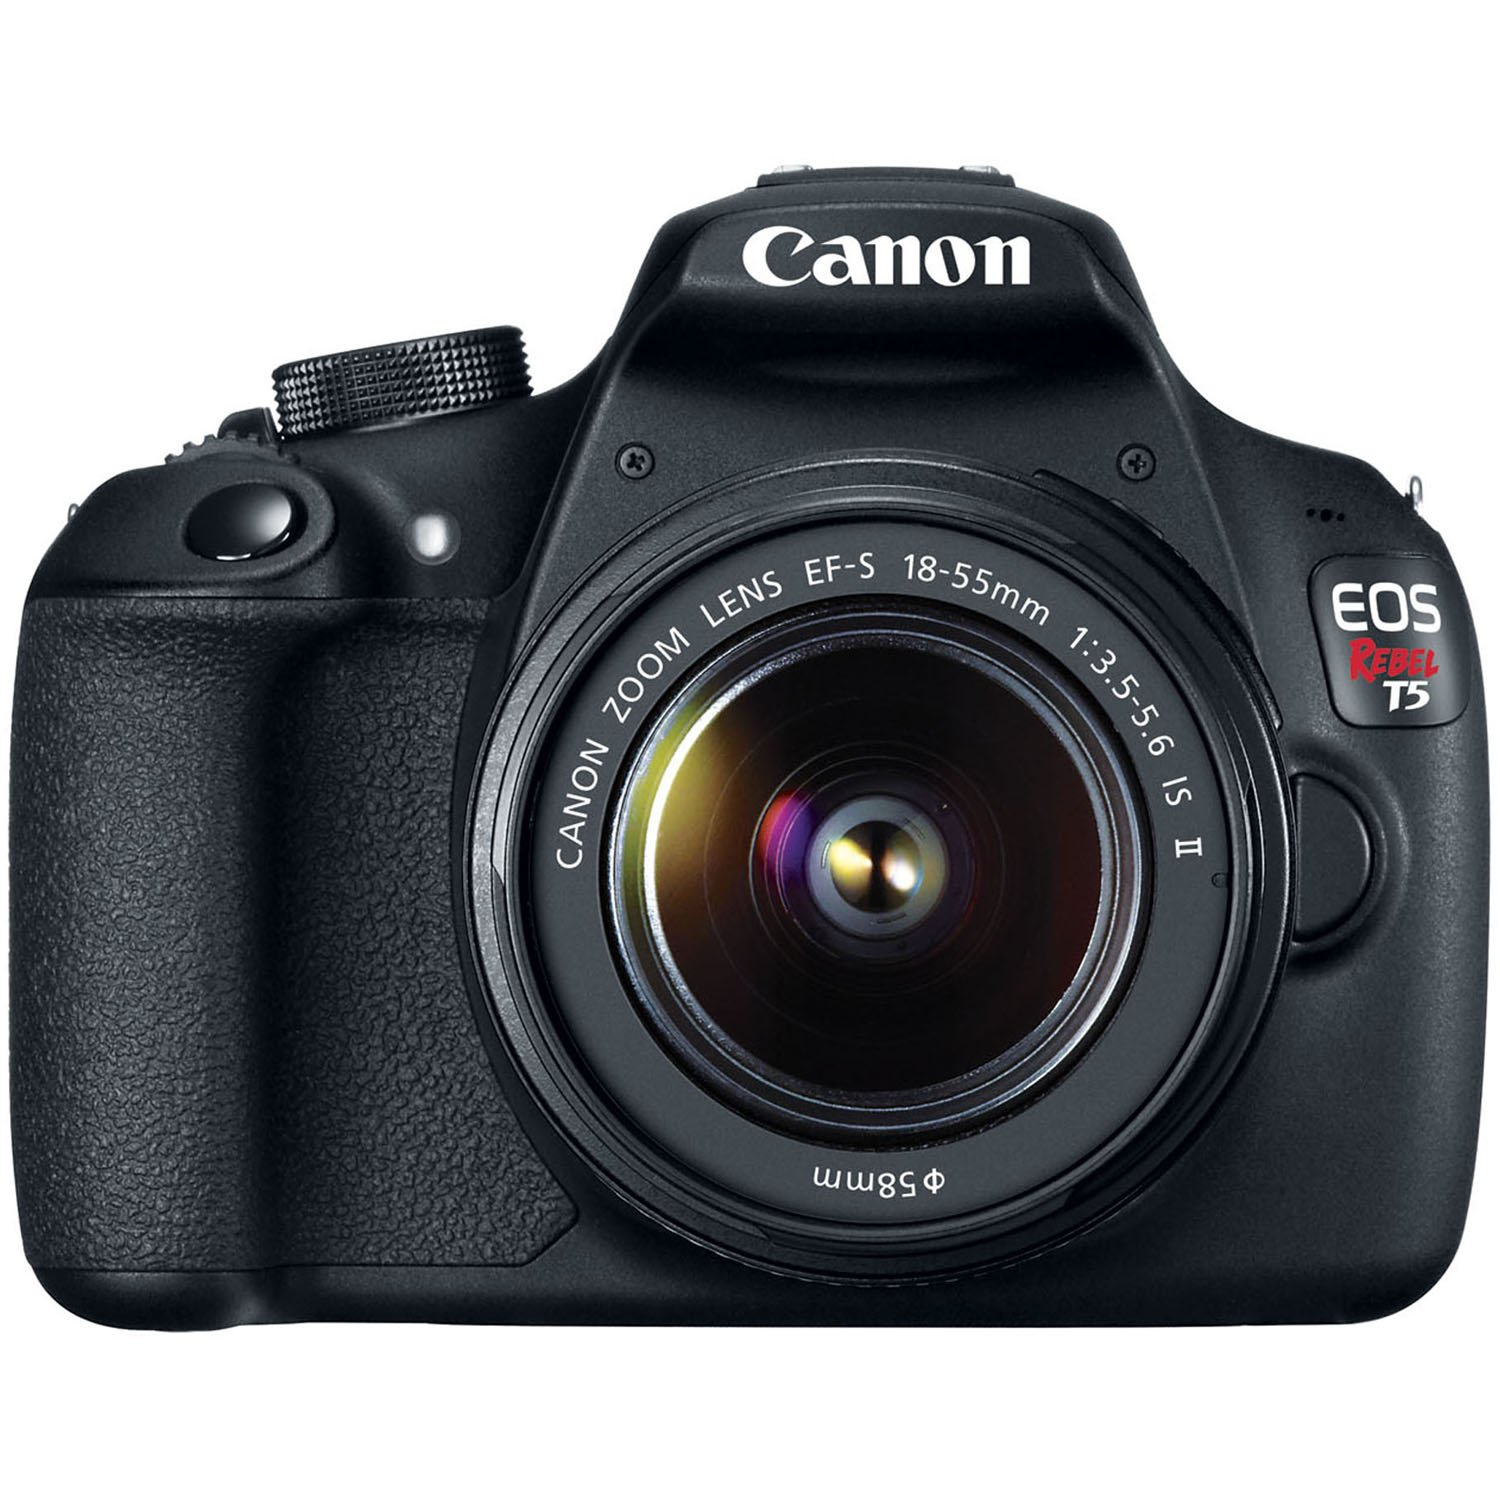 Canon EOS Rebel T5 Digital SLR Camera Kit with EF-S 18-55mm IS II Lens by Canon